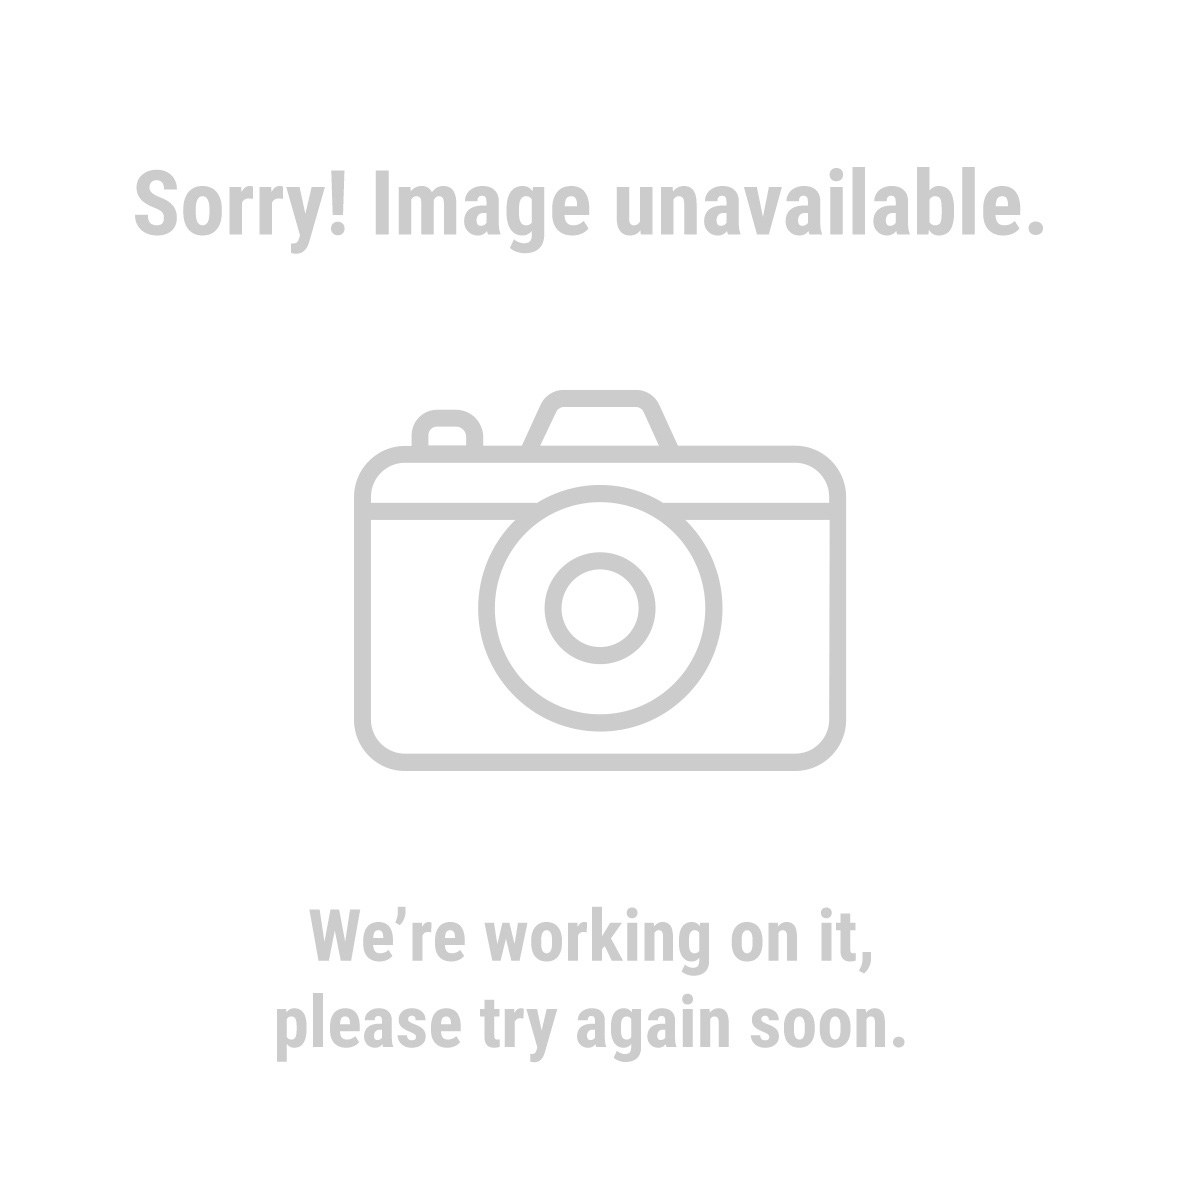 Storehouse® 67682 315 Piece Roll Pin Assortment